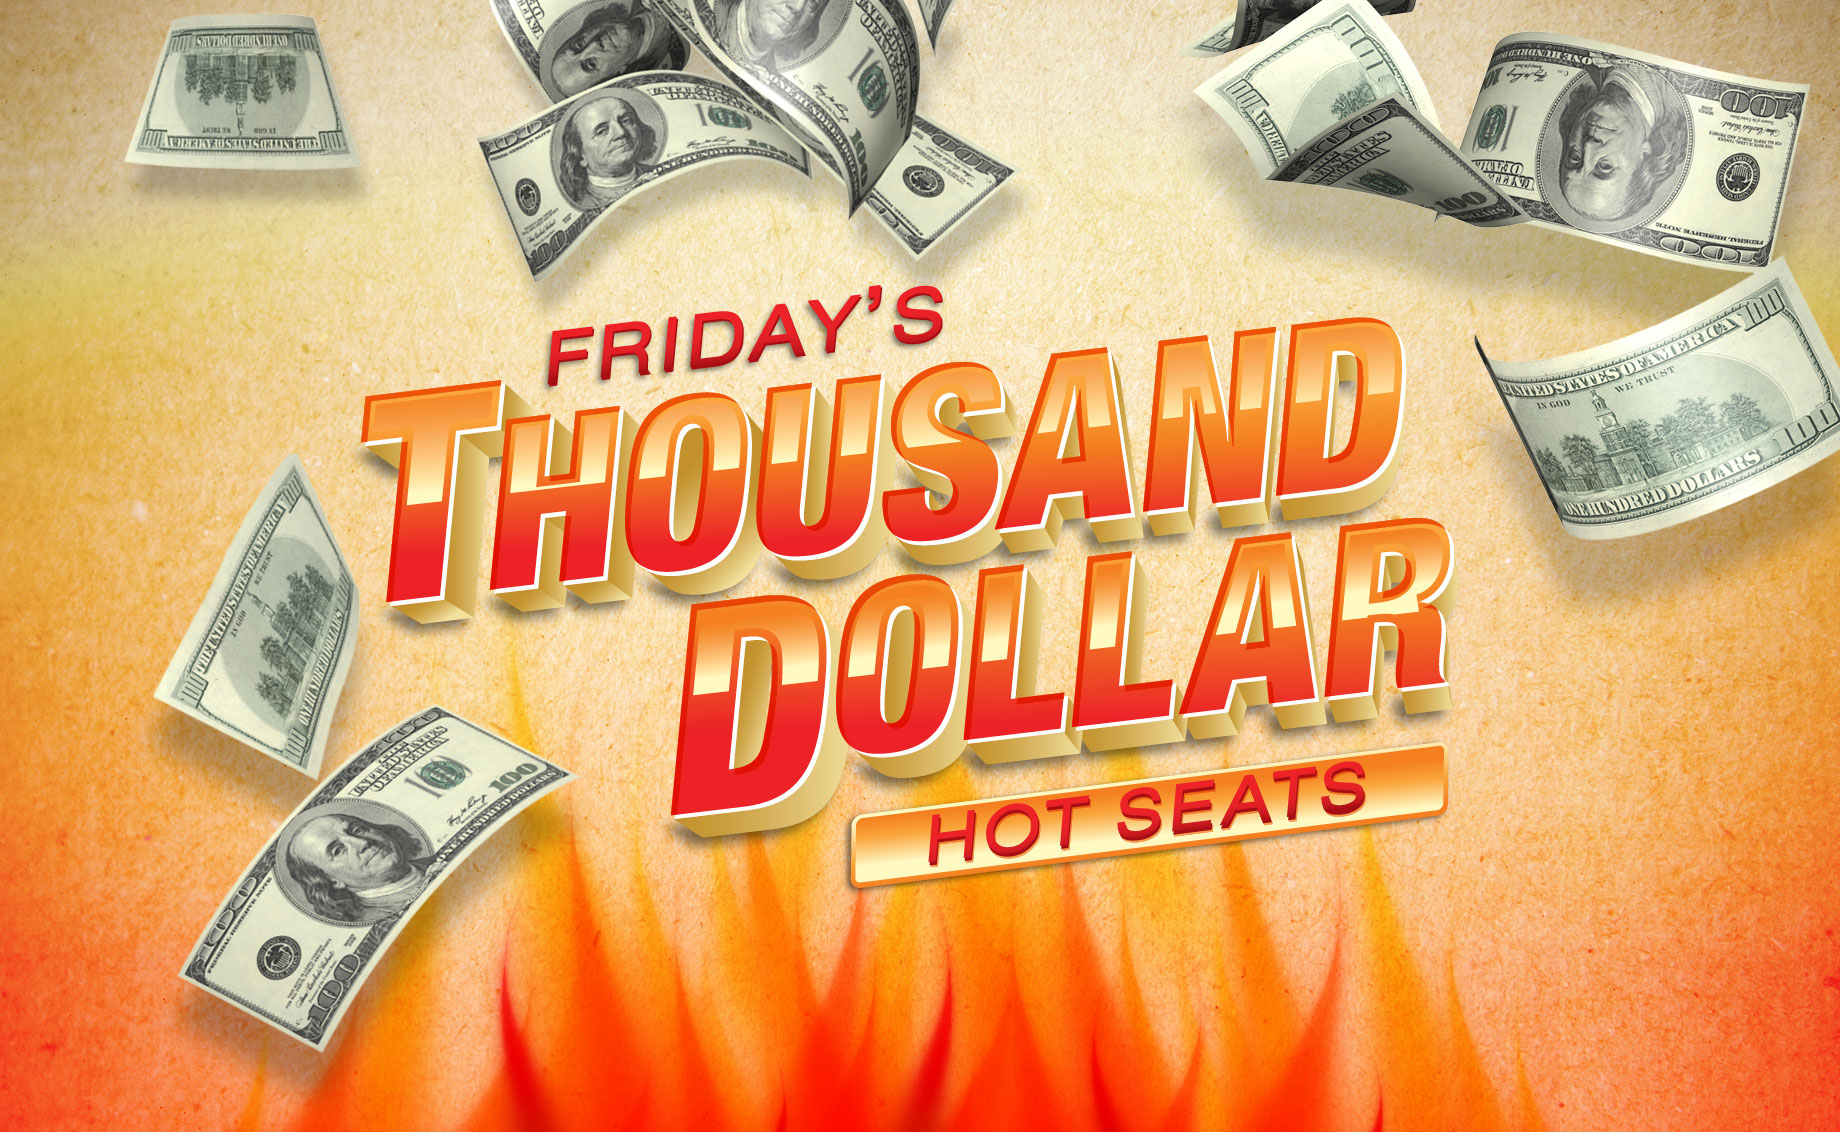 Friday's Thousand Dollar Hot Seats